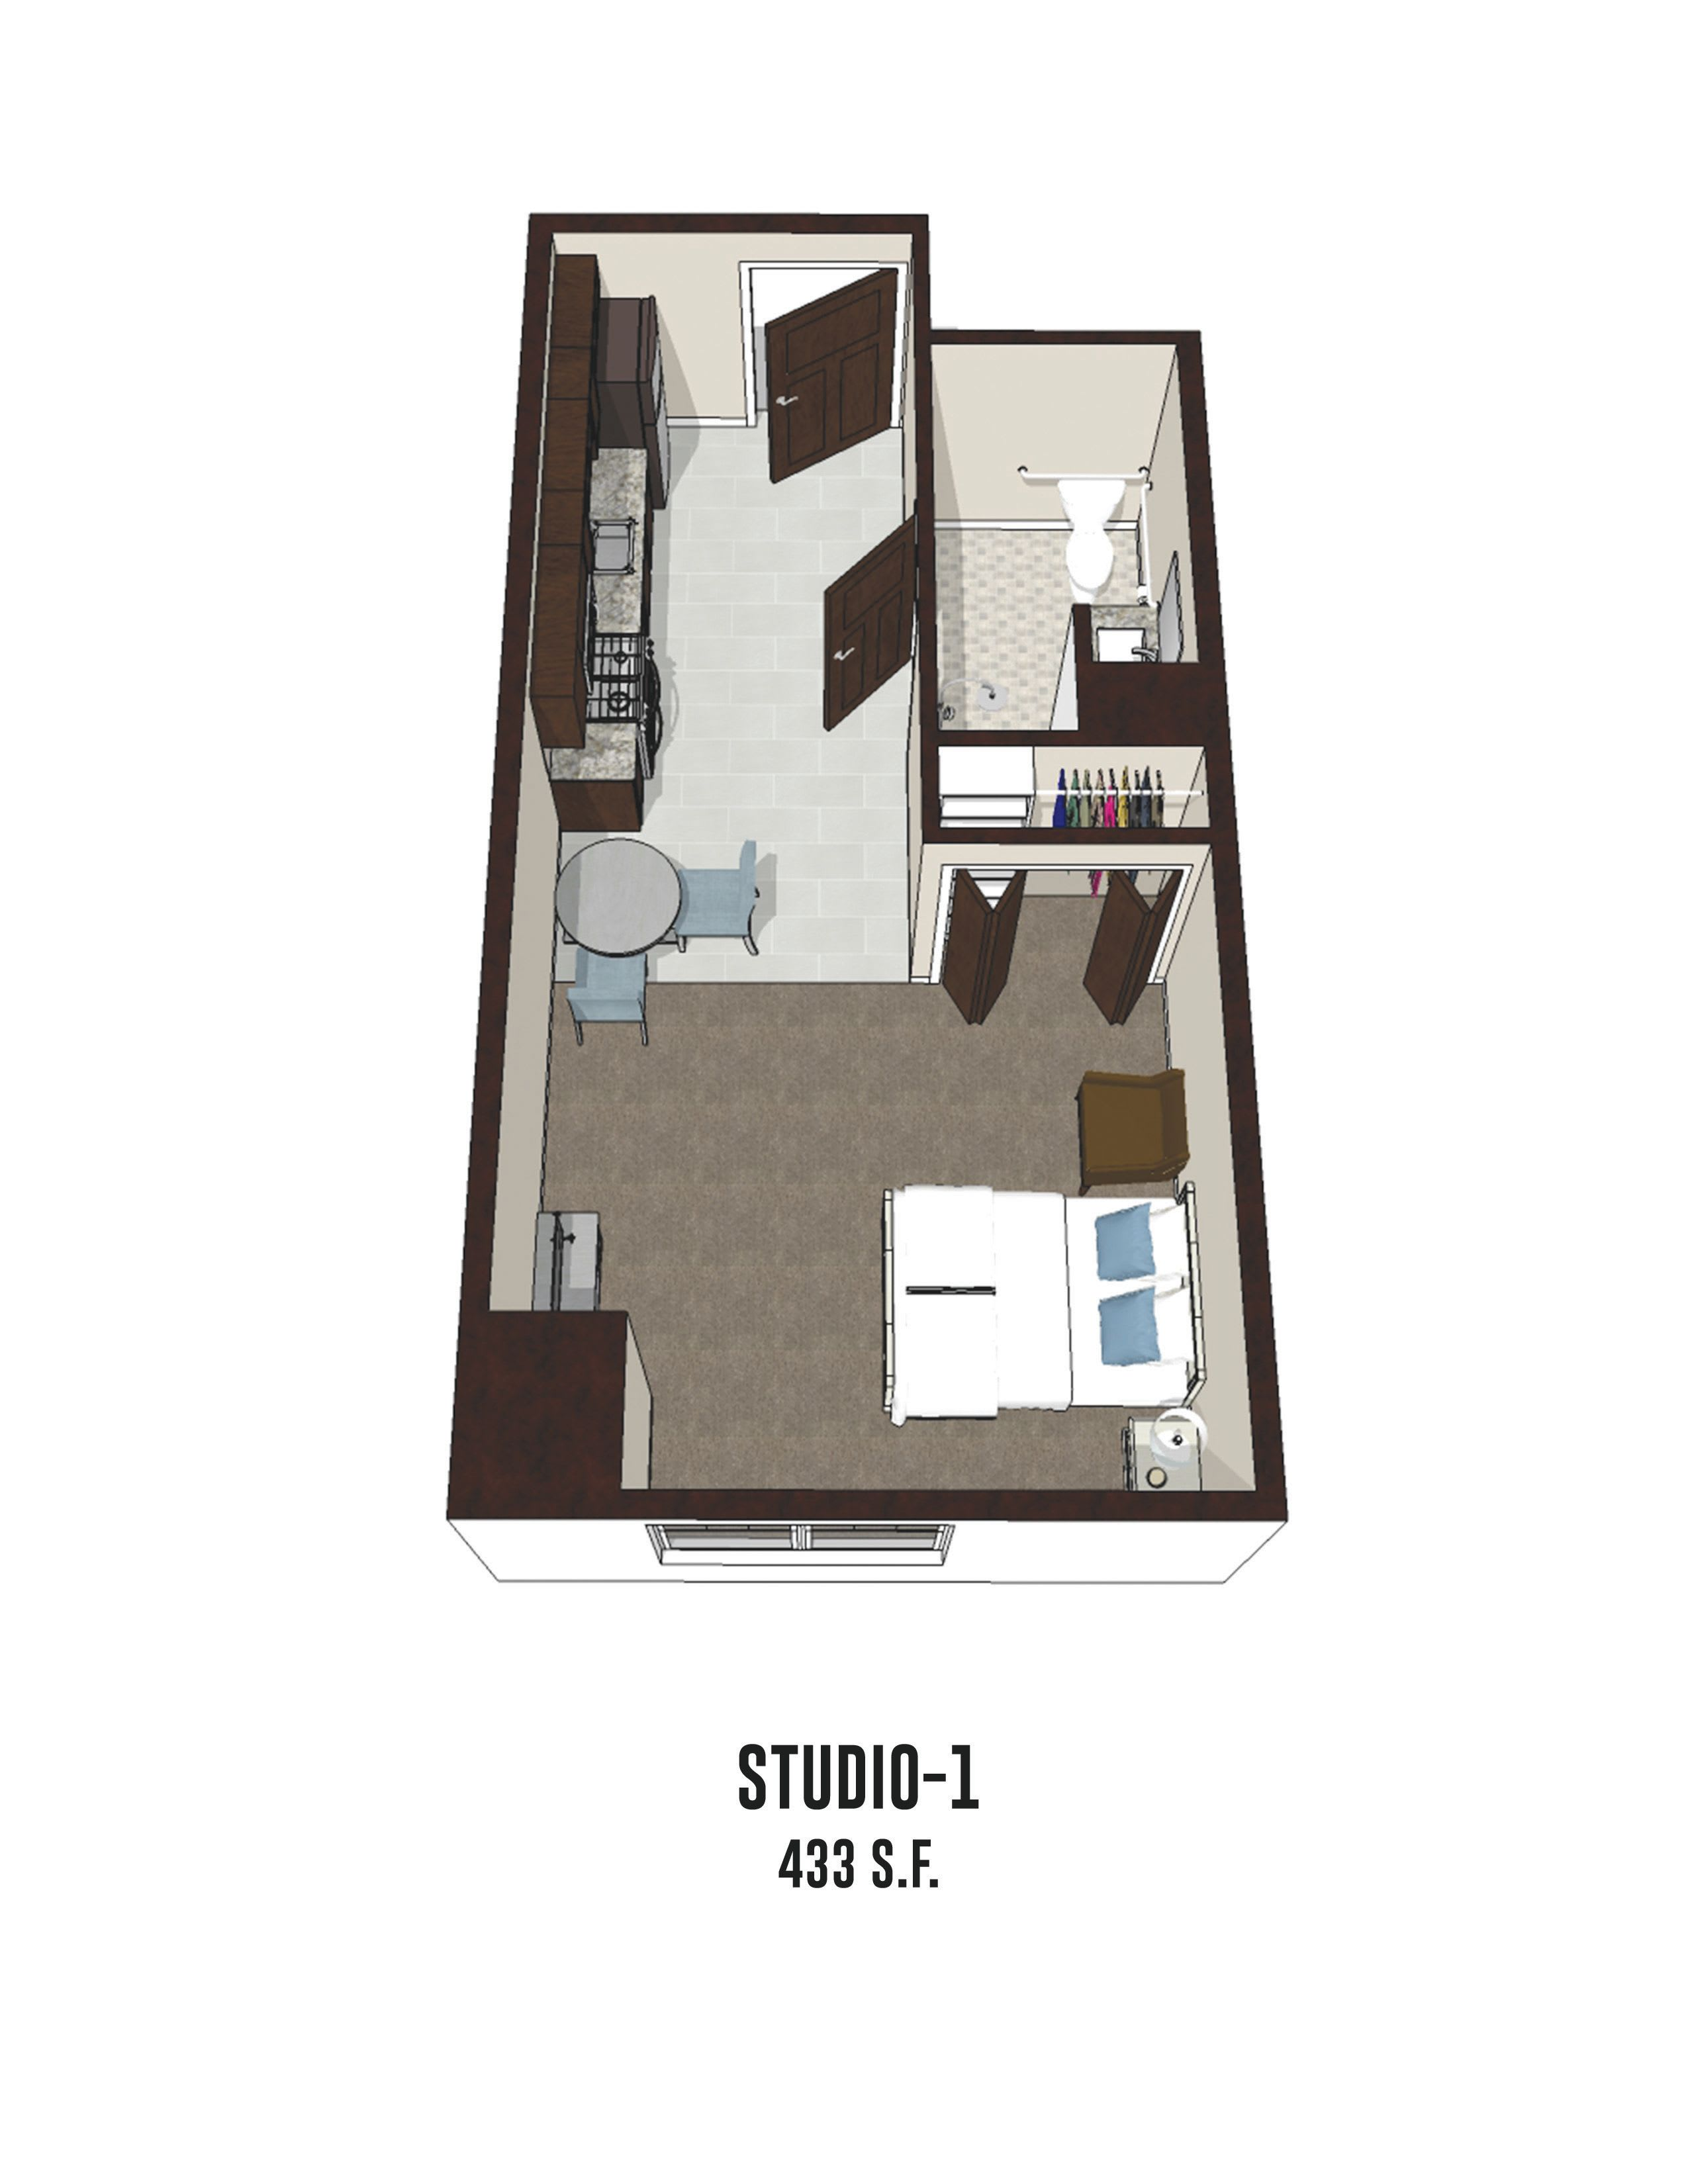 Independent living Studio 1 is 433 square feet at Byron Center in Byron Center, Michigan.